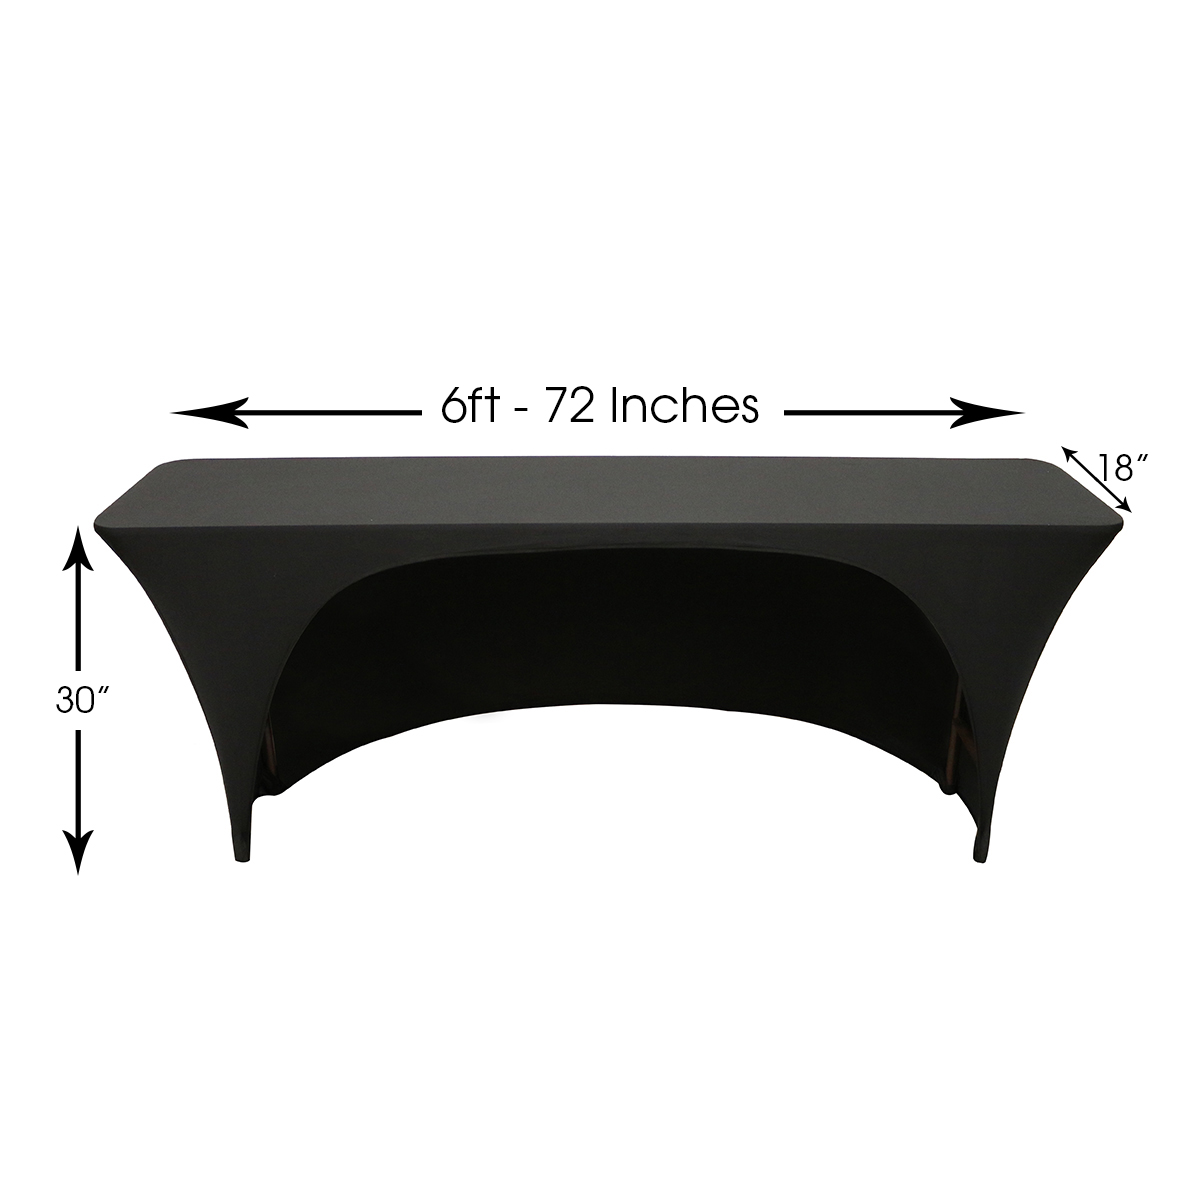 stretch-spandex-6ft-18-inches-open-back-rectangular-table-covers-black-dimensions.jpg